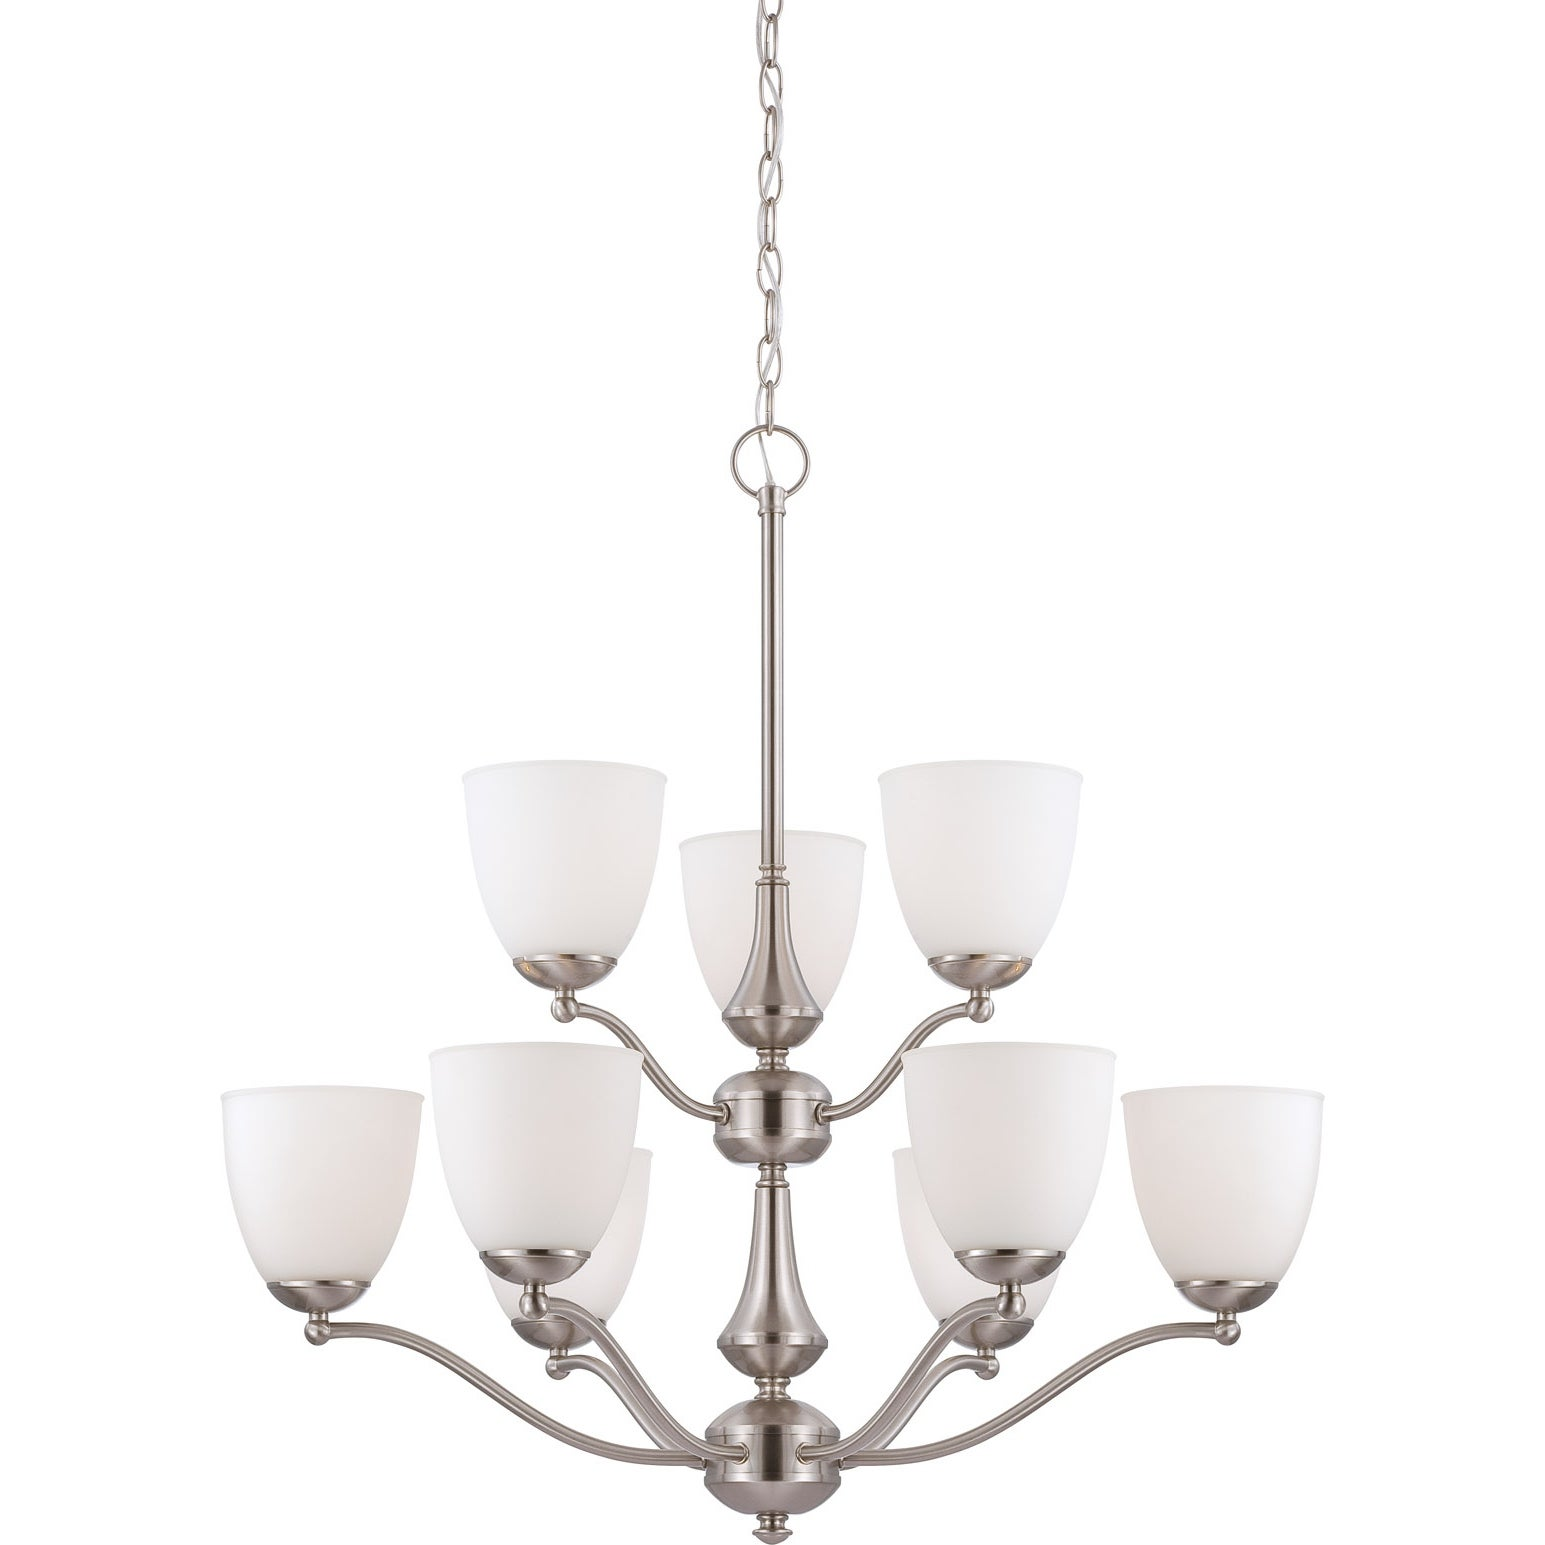 Nuvo 'Patton' 9-light Brushed Nickel Chandelier